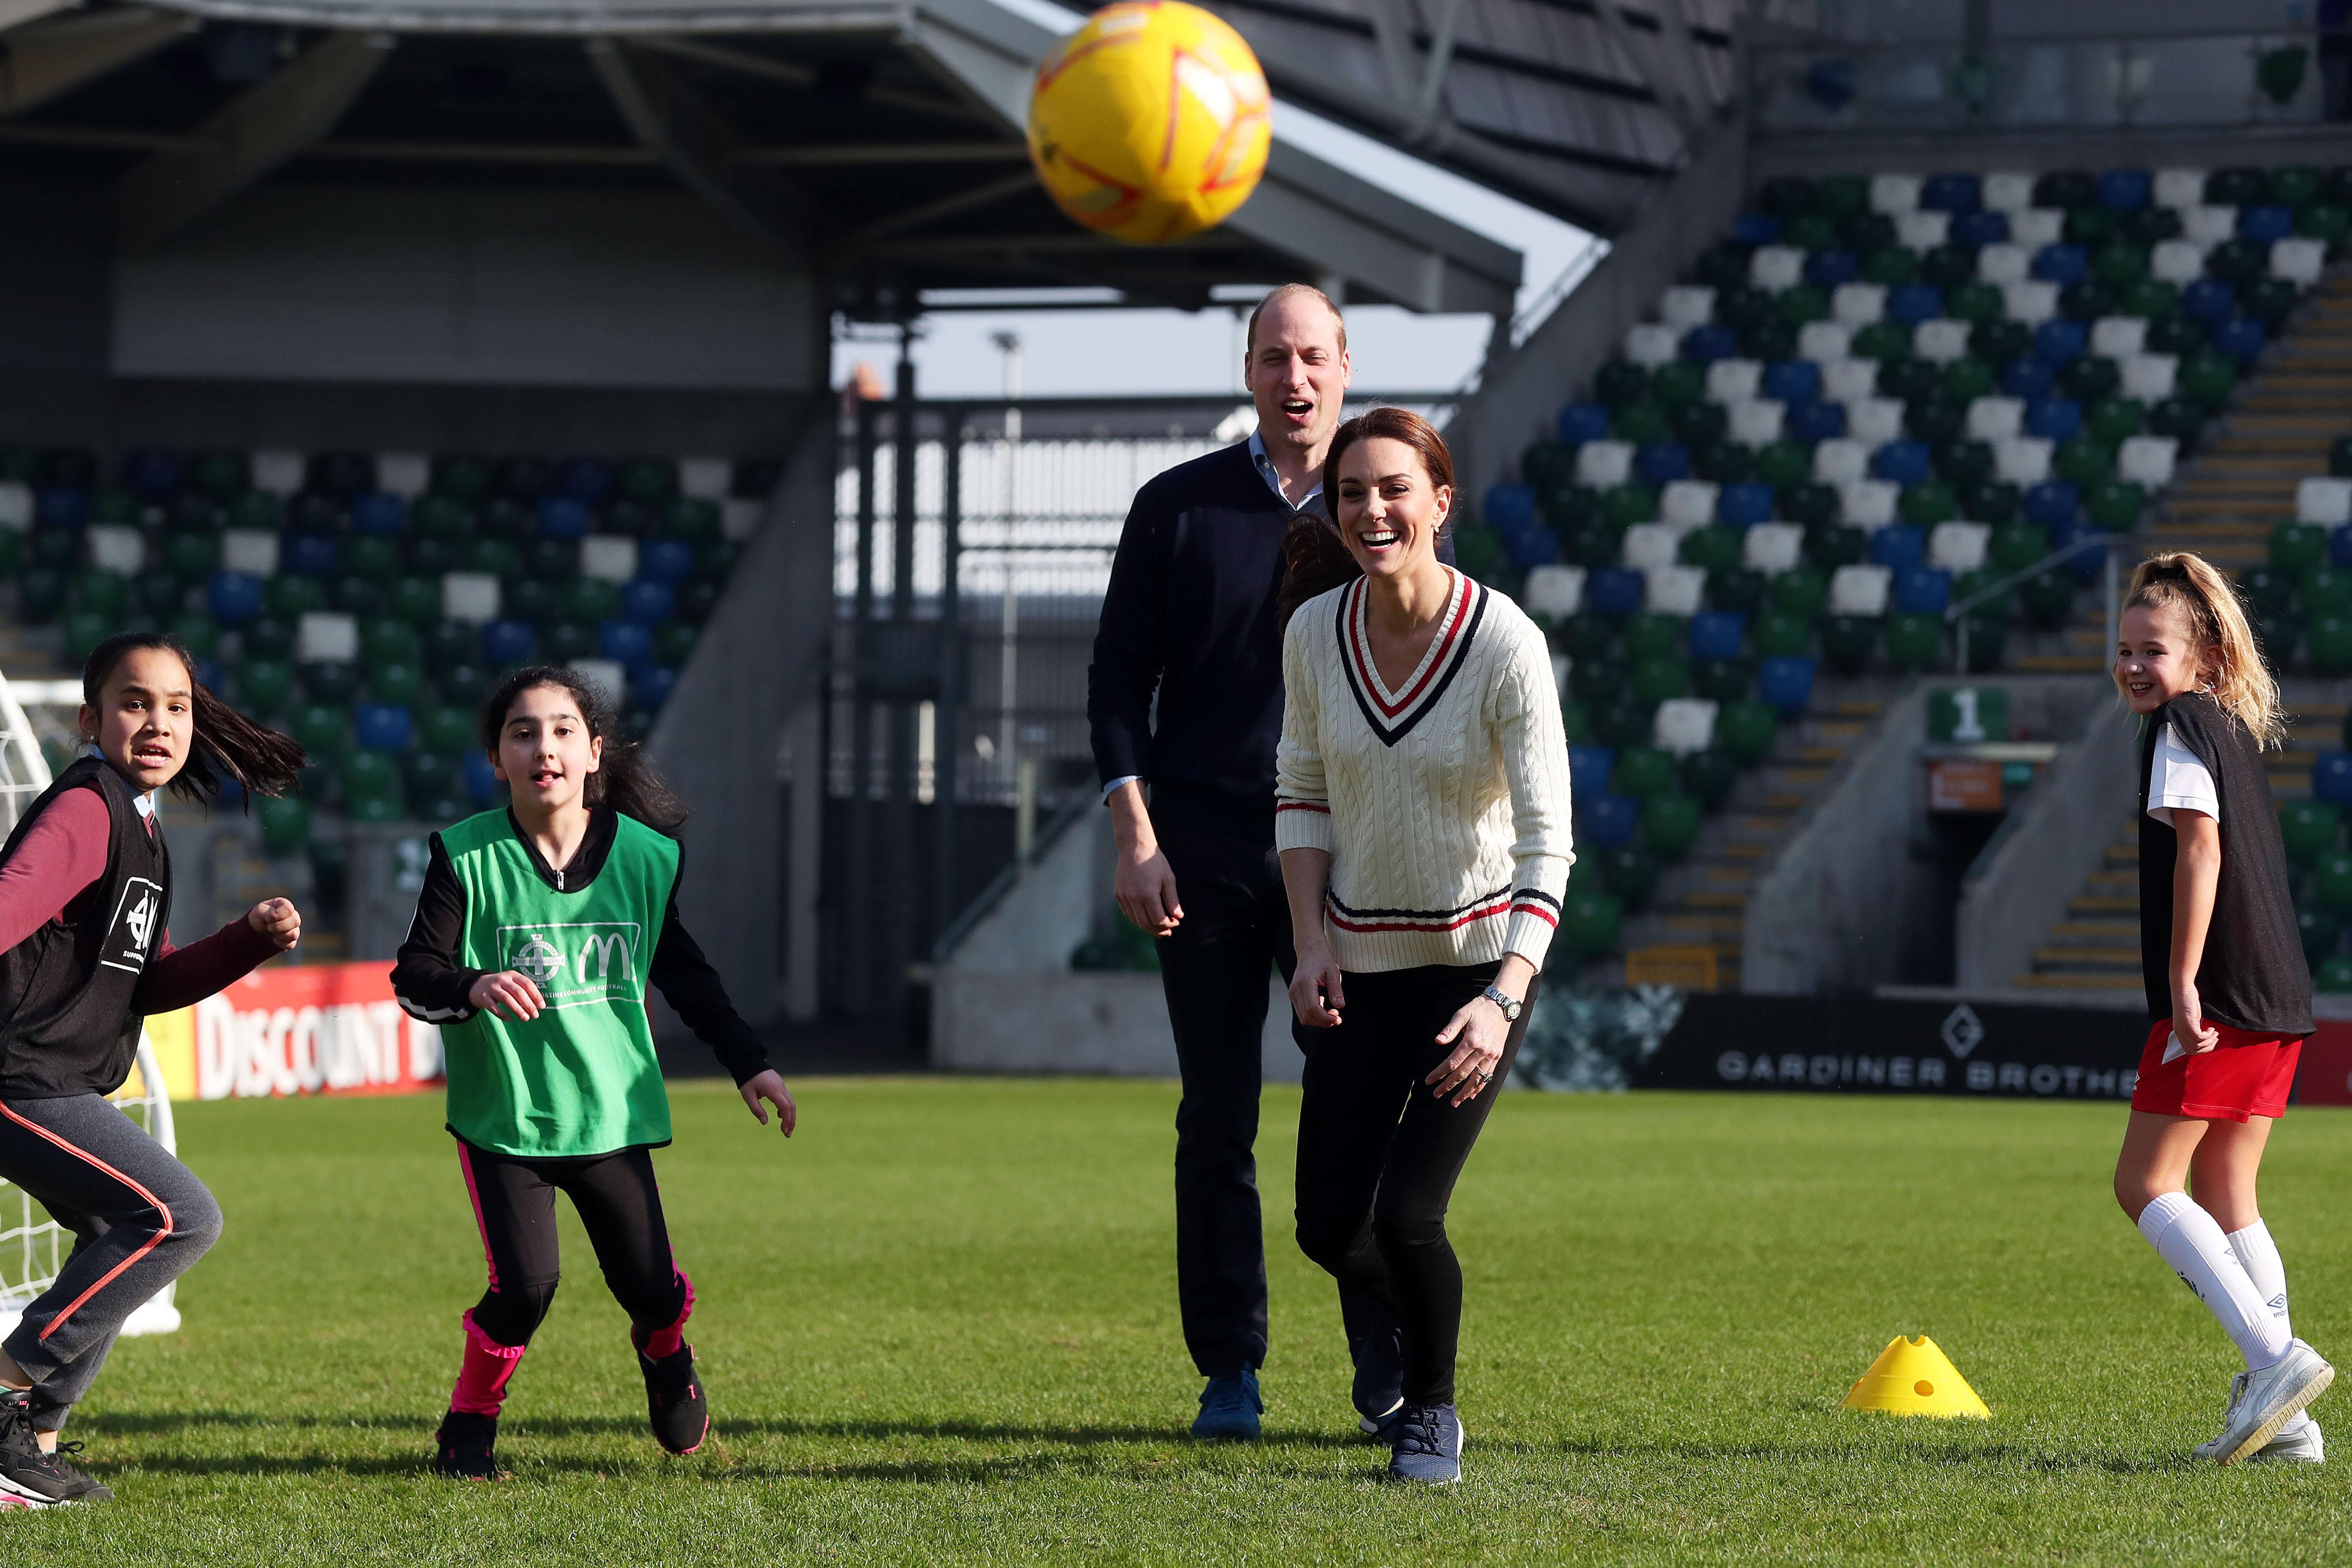 b9de0656a989c Kate and William go head to head during a football match at Windsor Park  stadium in Belfast [Photo: Getty]